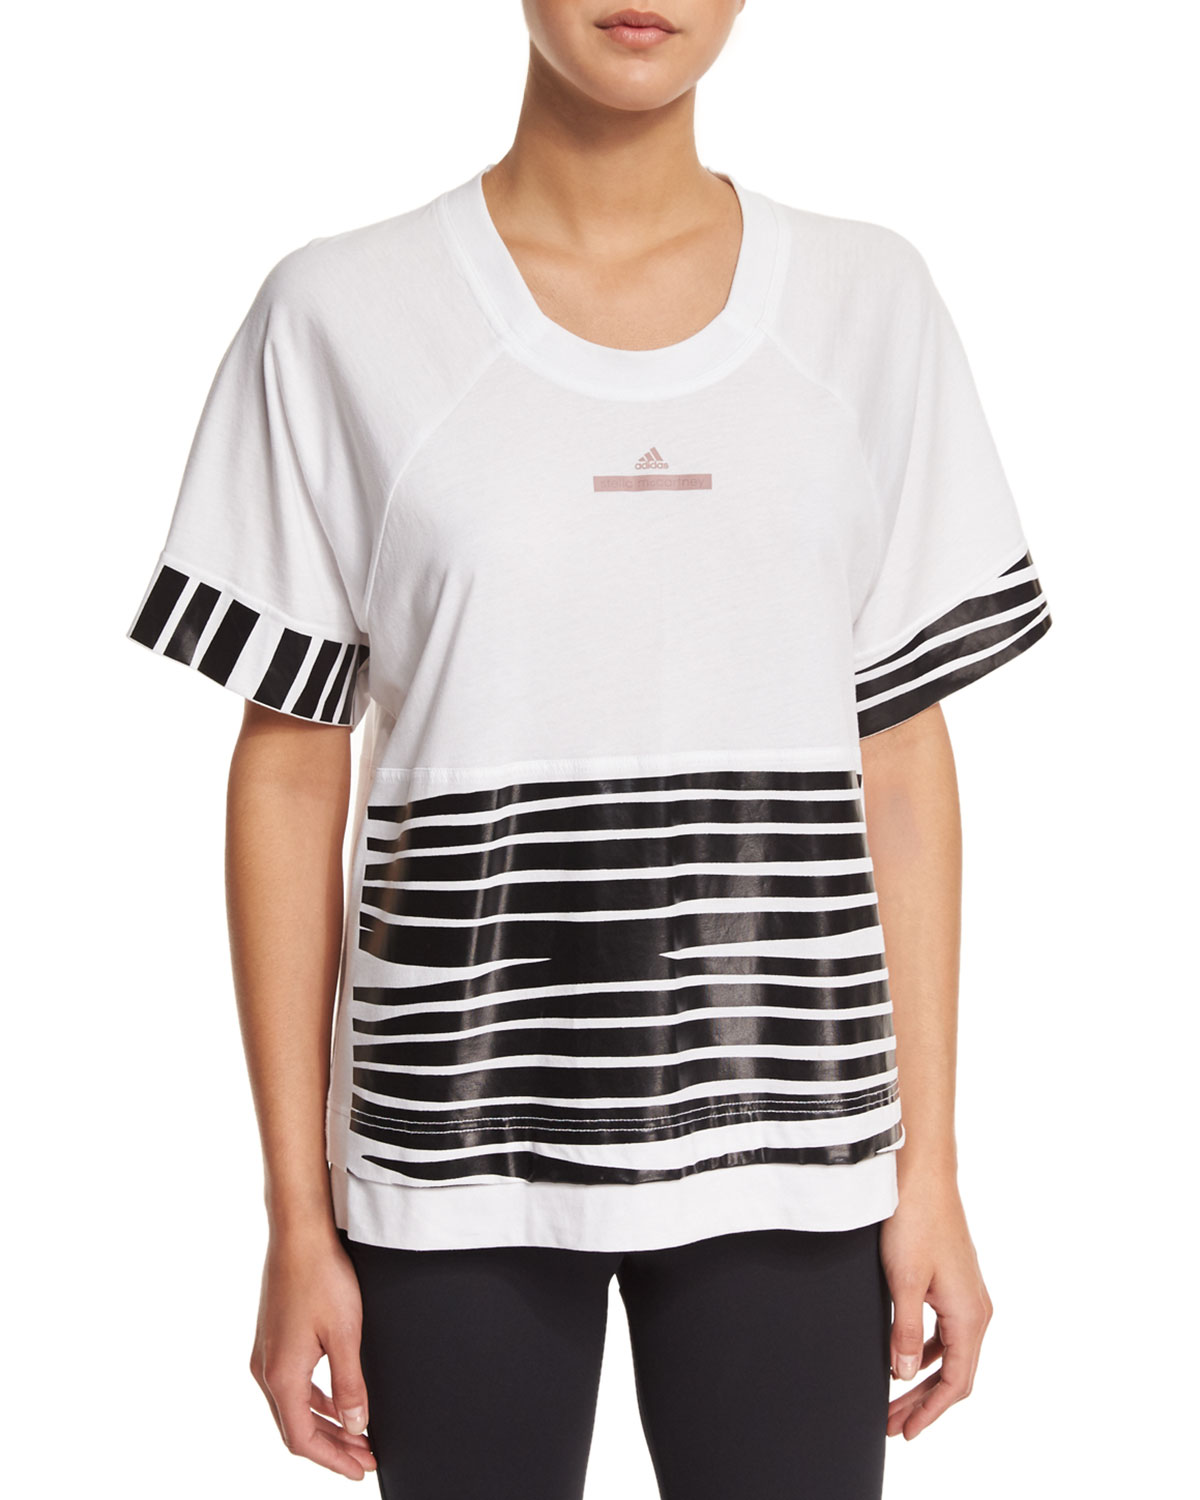 Essentials Short-Sleeve Zebra-Print Tee, White